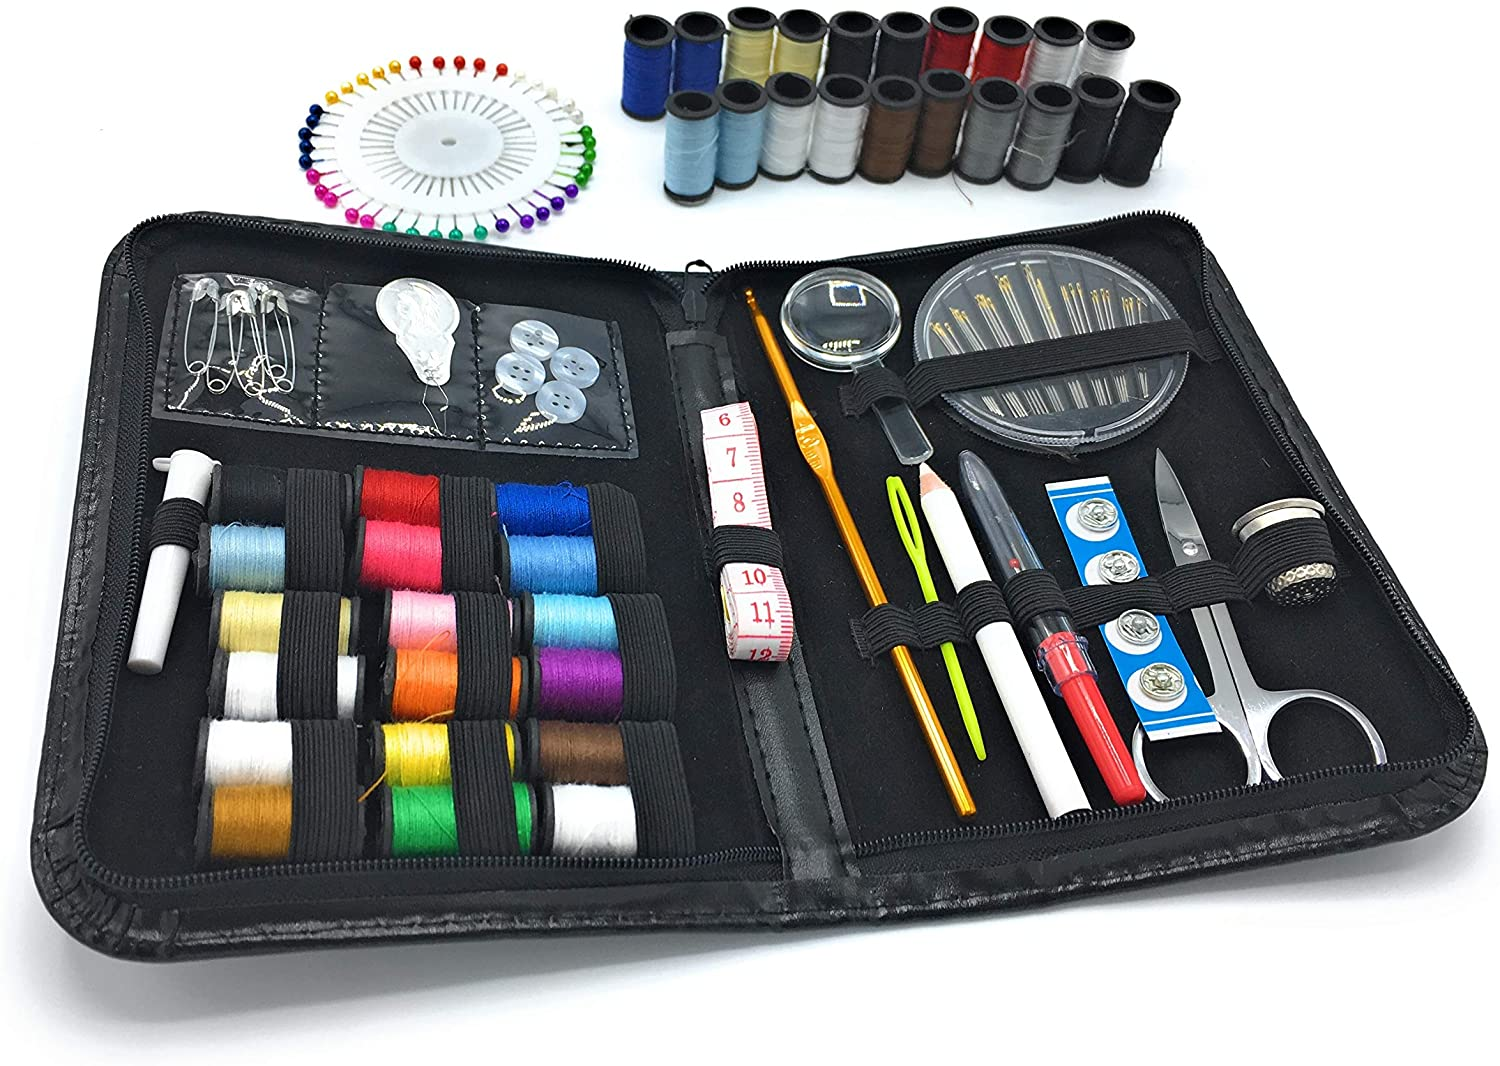 MYWONDERLING Sewing Kit 134 Premium Sewing Supplies 38 Spools Thread Colors Pin Clip Needle Scissor Thimble Tape Measure Compact Carrying Case Camper Traveller Emergency Tailor Home Office School